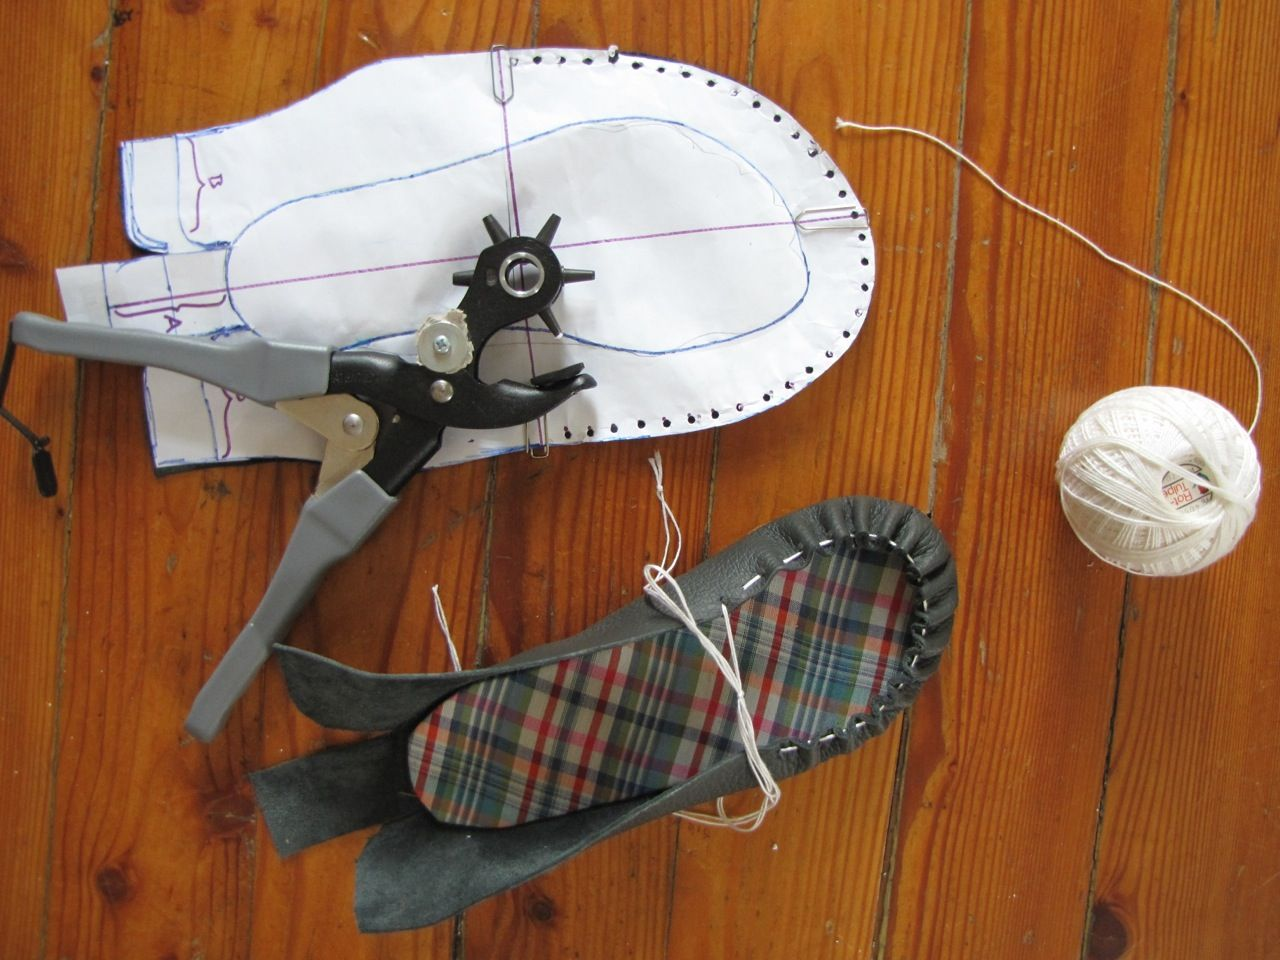 diy moccasin pattern arts and crafts Pinterest